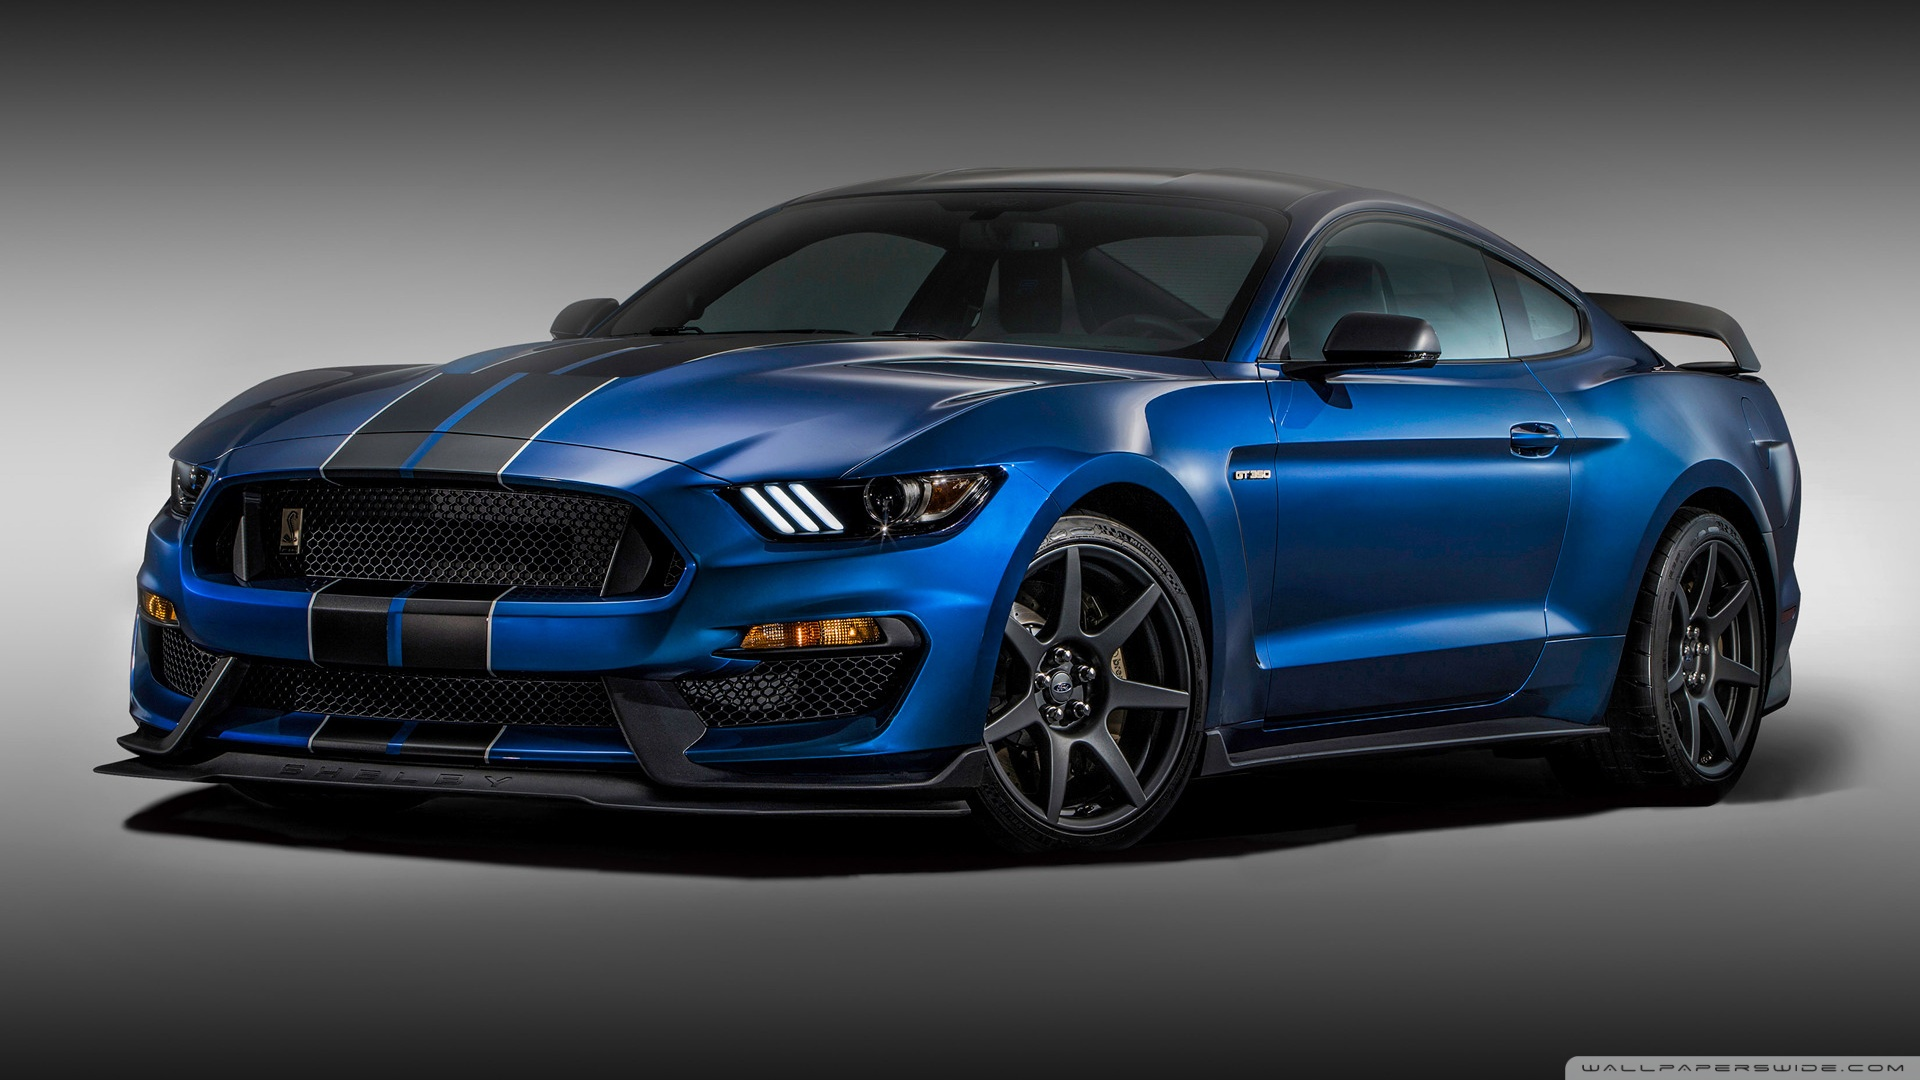 1920x1080 - Shelby Mustang GT 350 Wallpapers 12